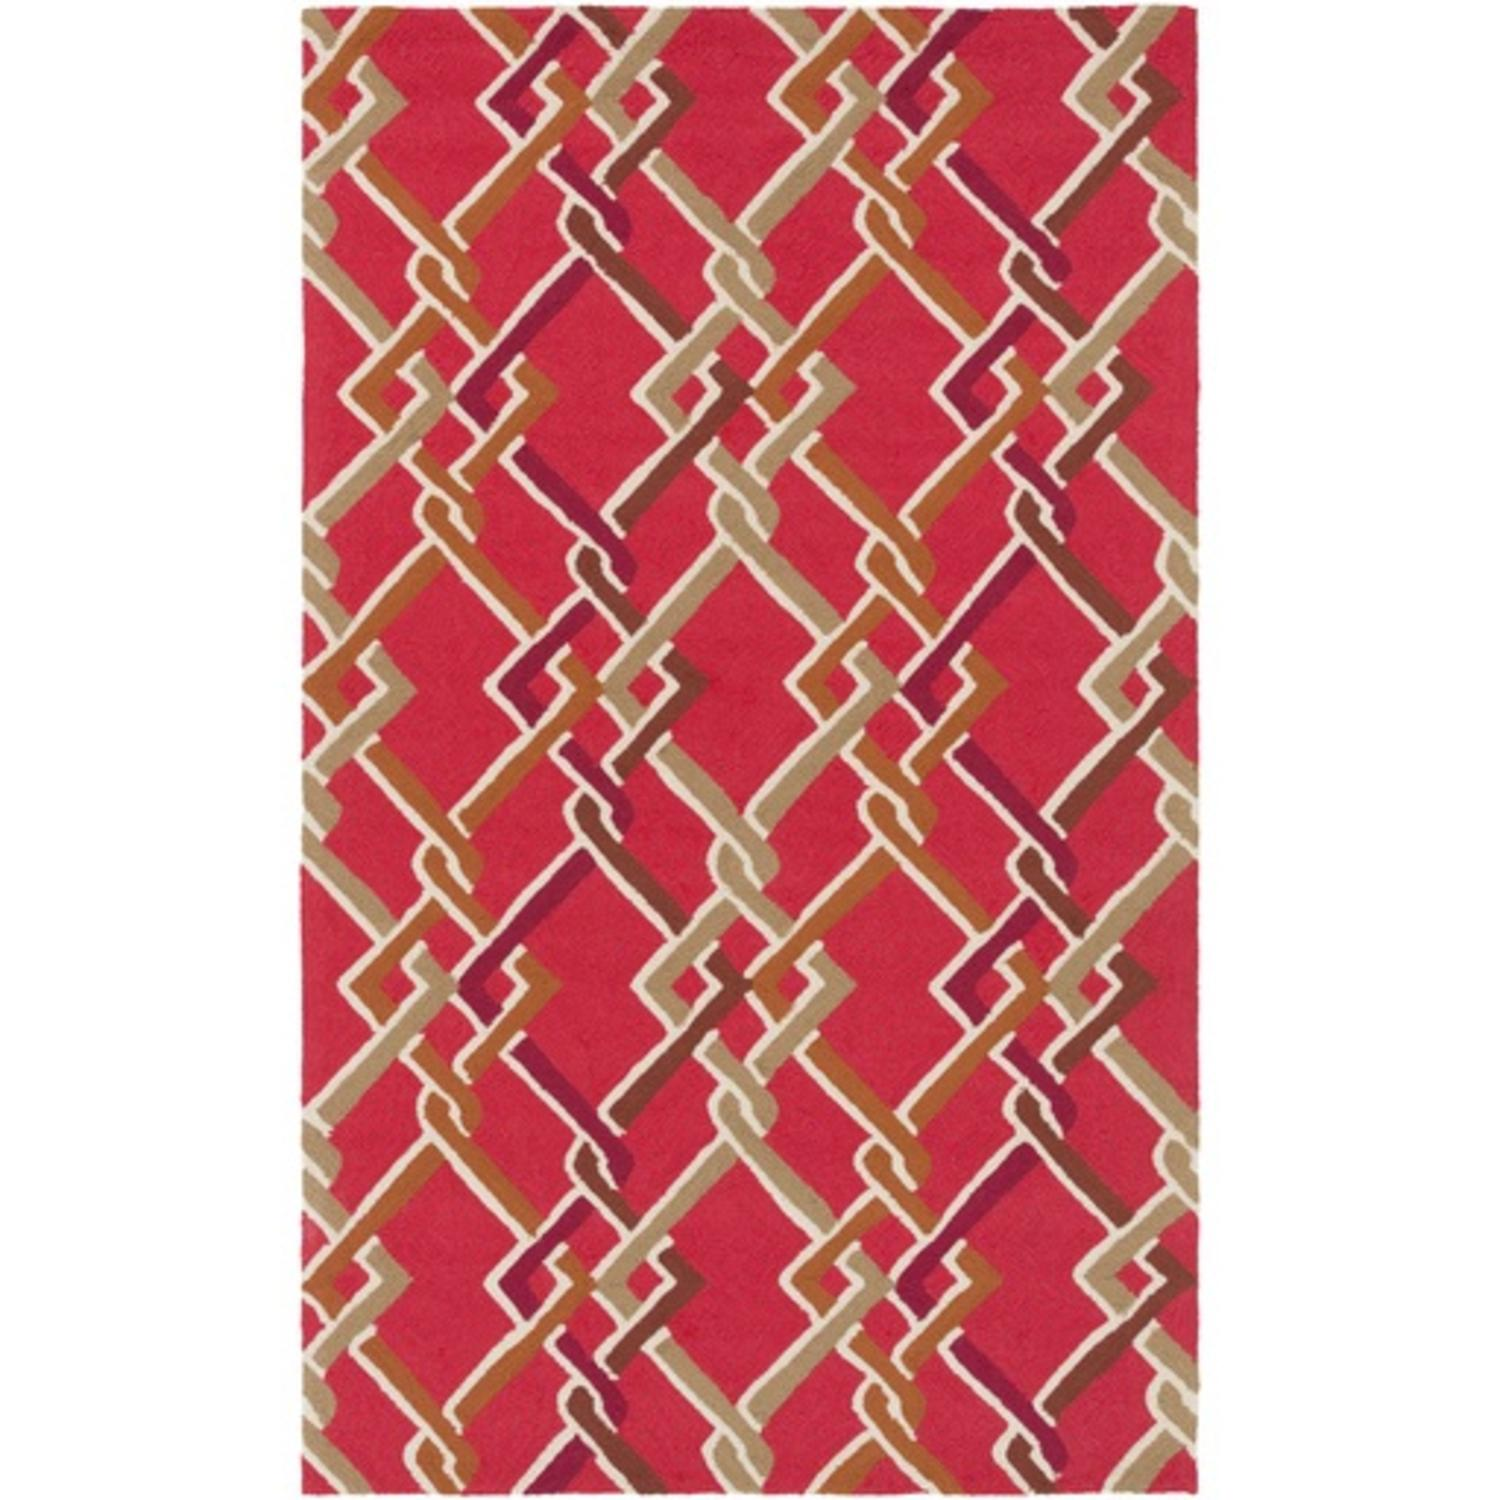 8' x 10' Pleasant Promenade Red, Brown and Beige Hand Hooked Rectangular Outdoor Area Throw Rug